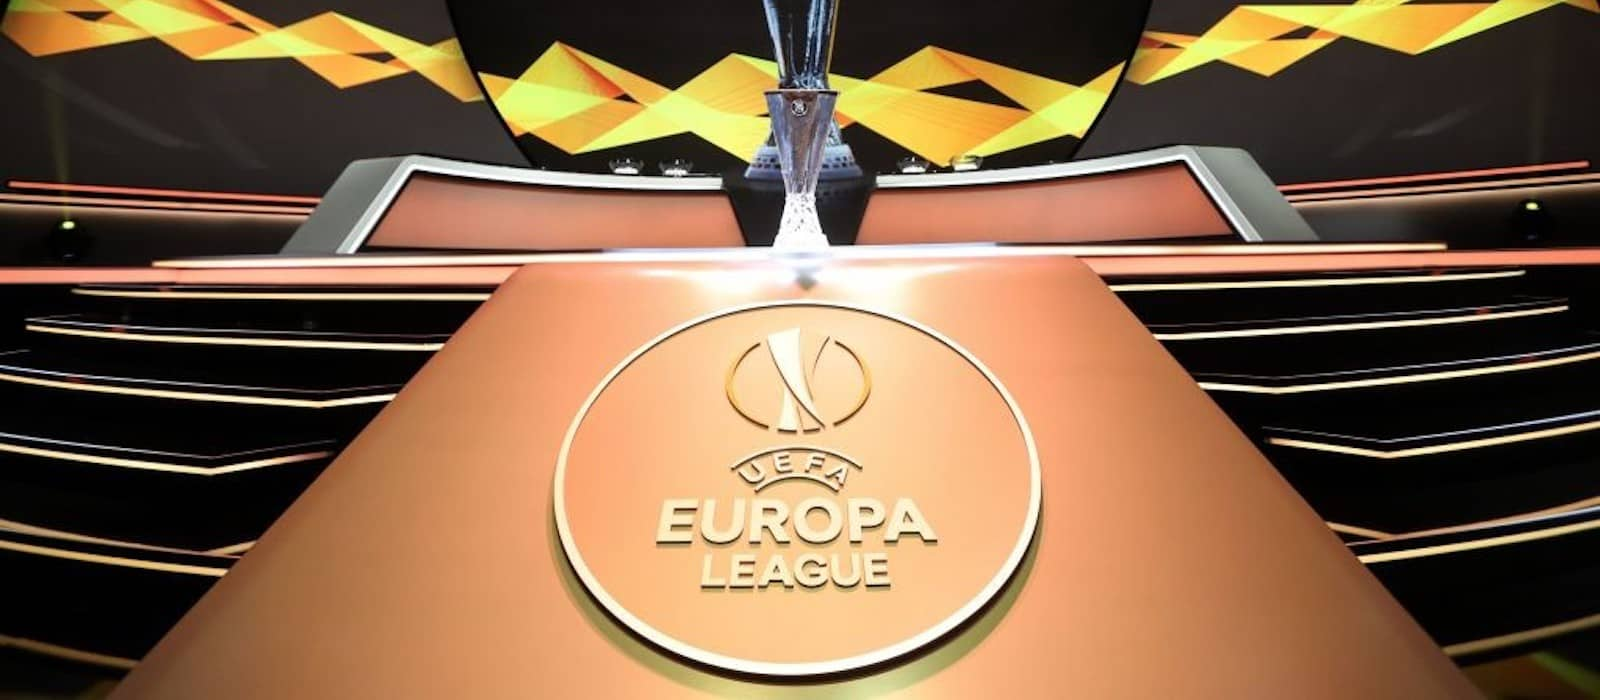 Who might Man United face in today's Europa League draw?